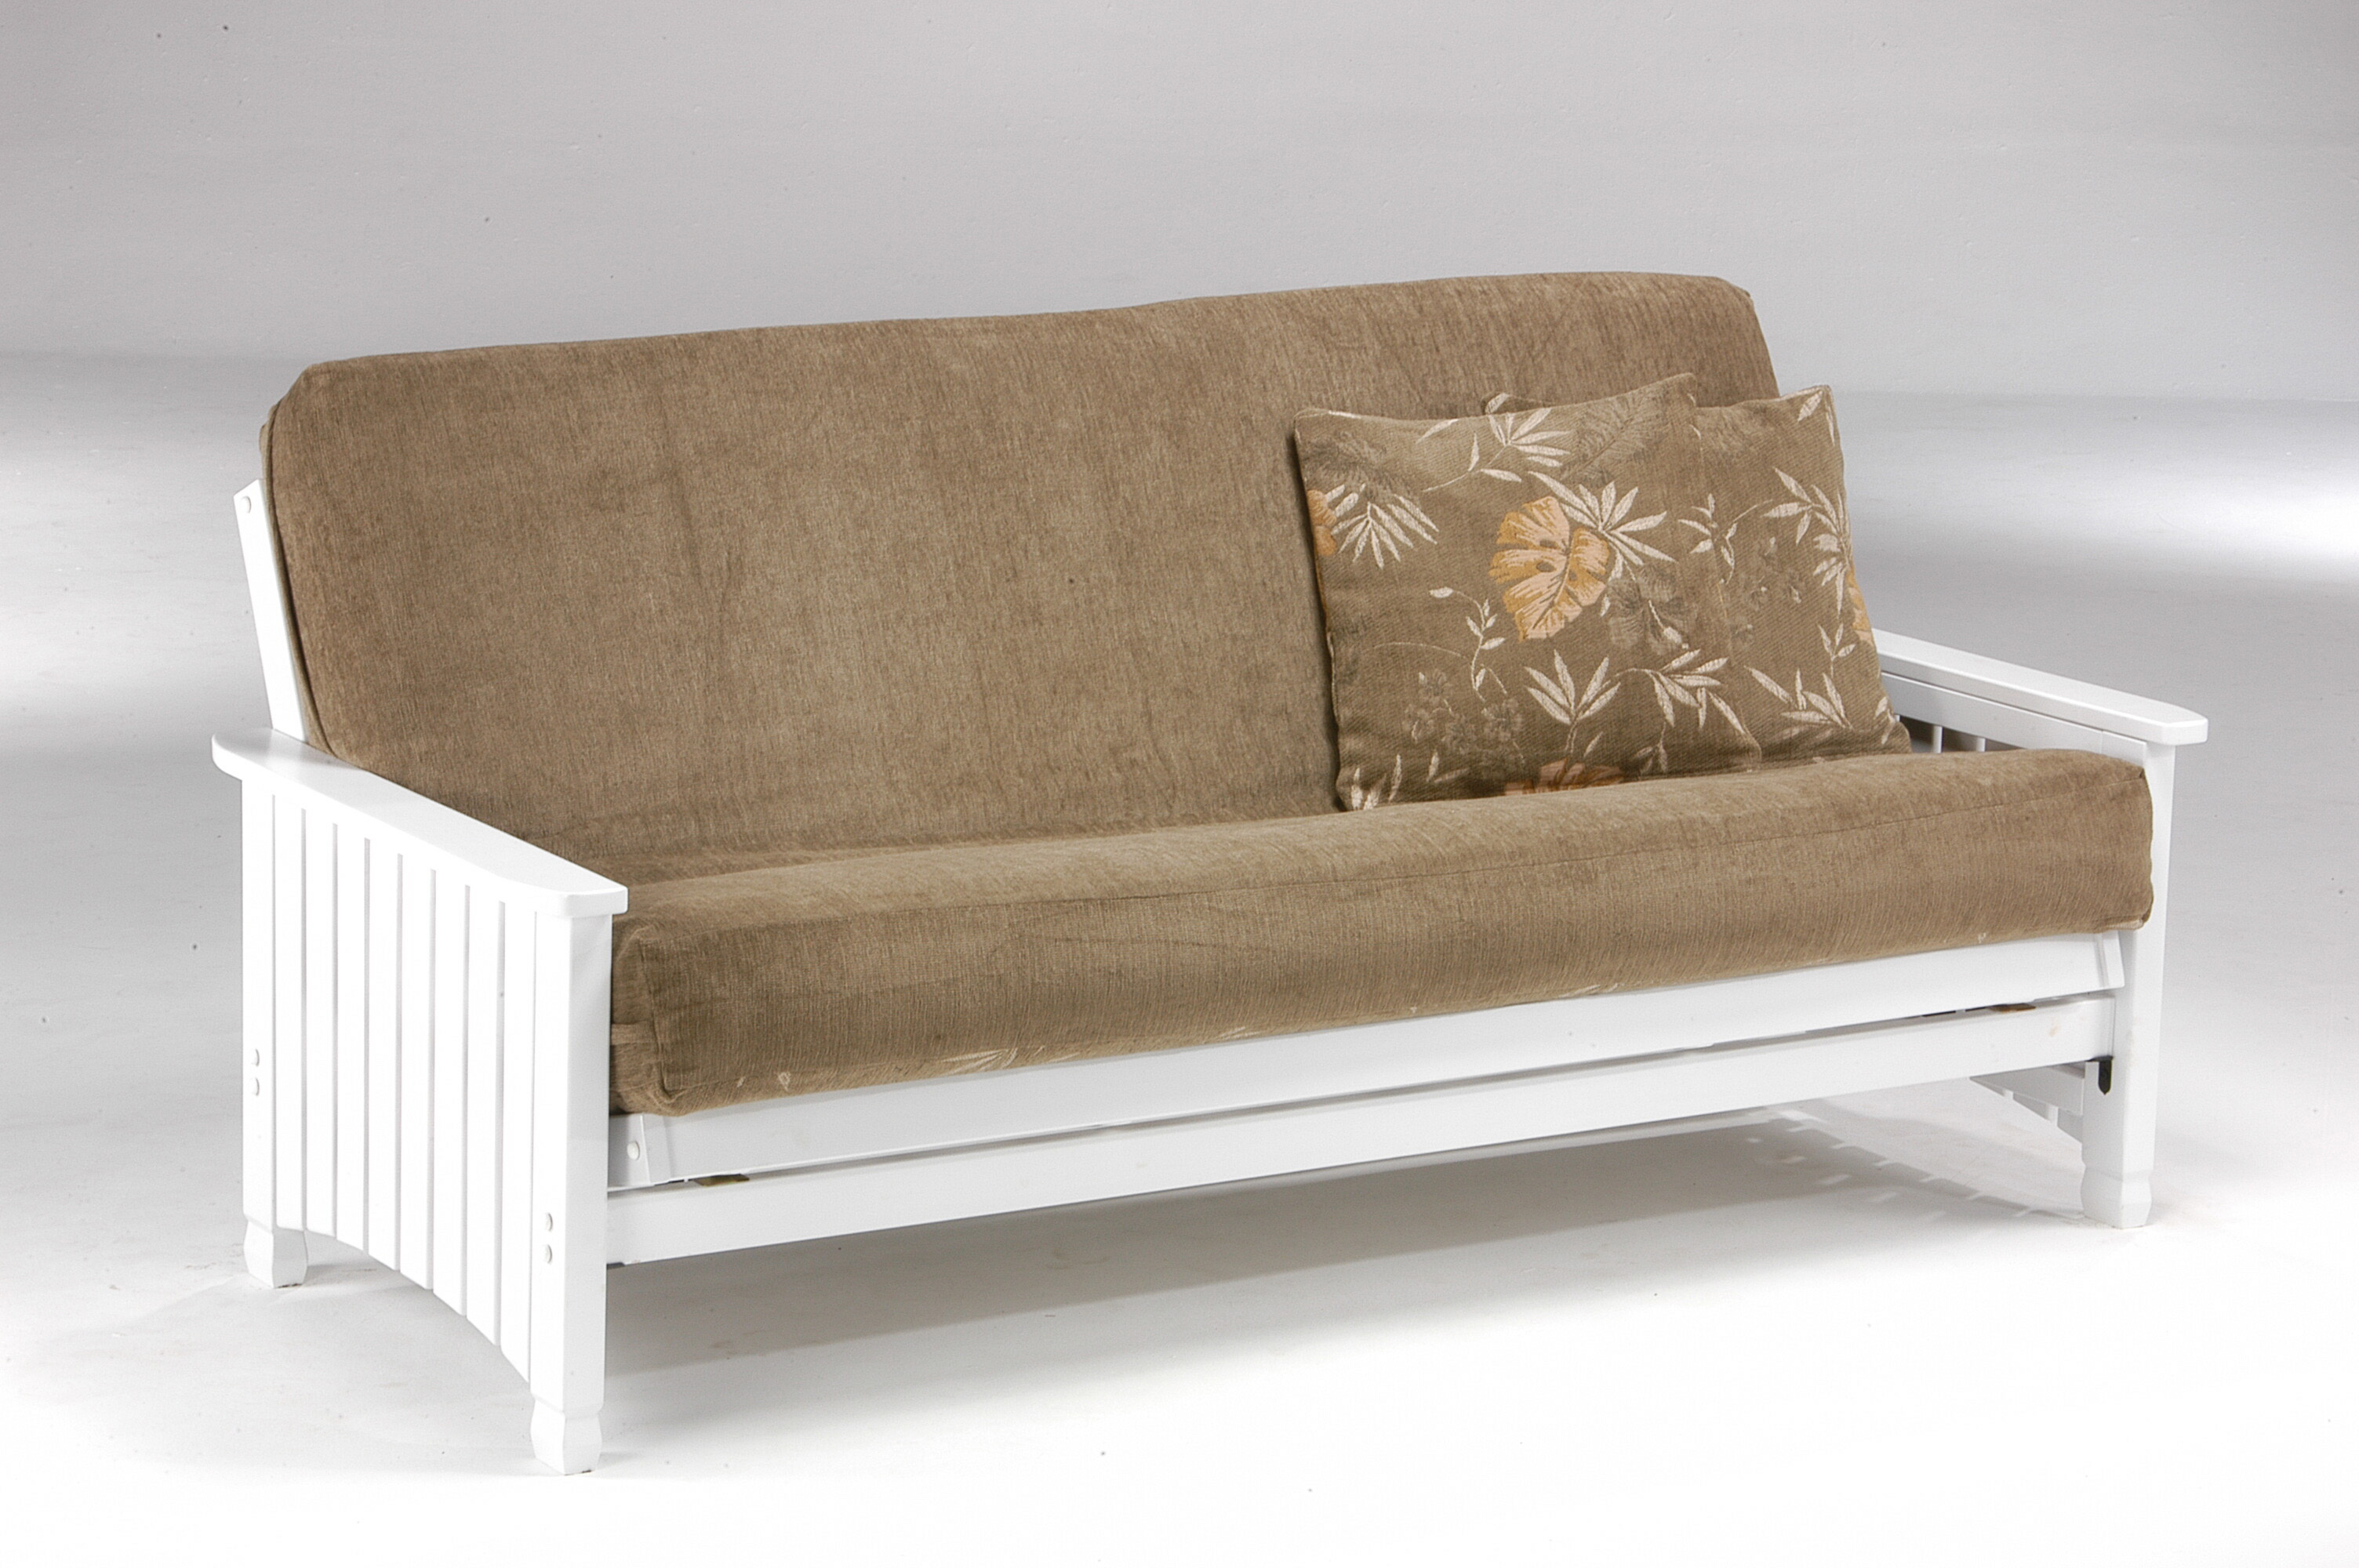 The Futon Collection